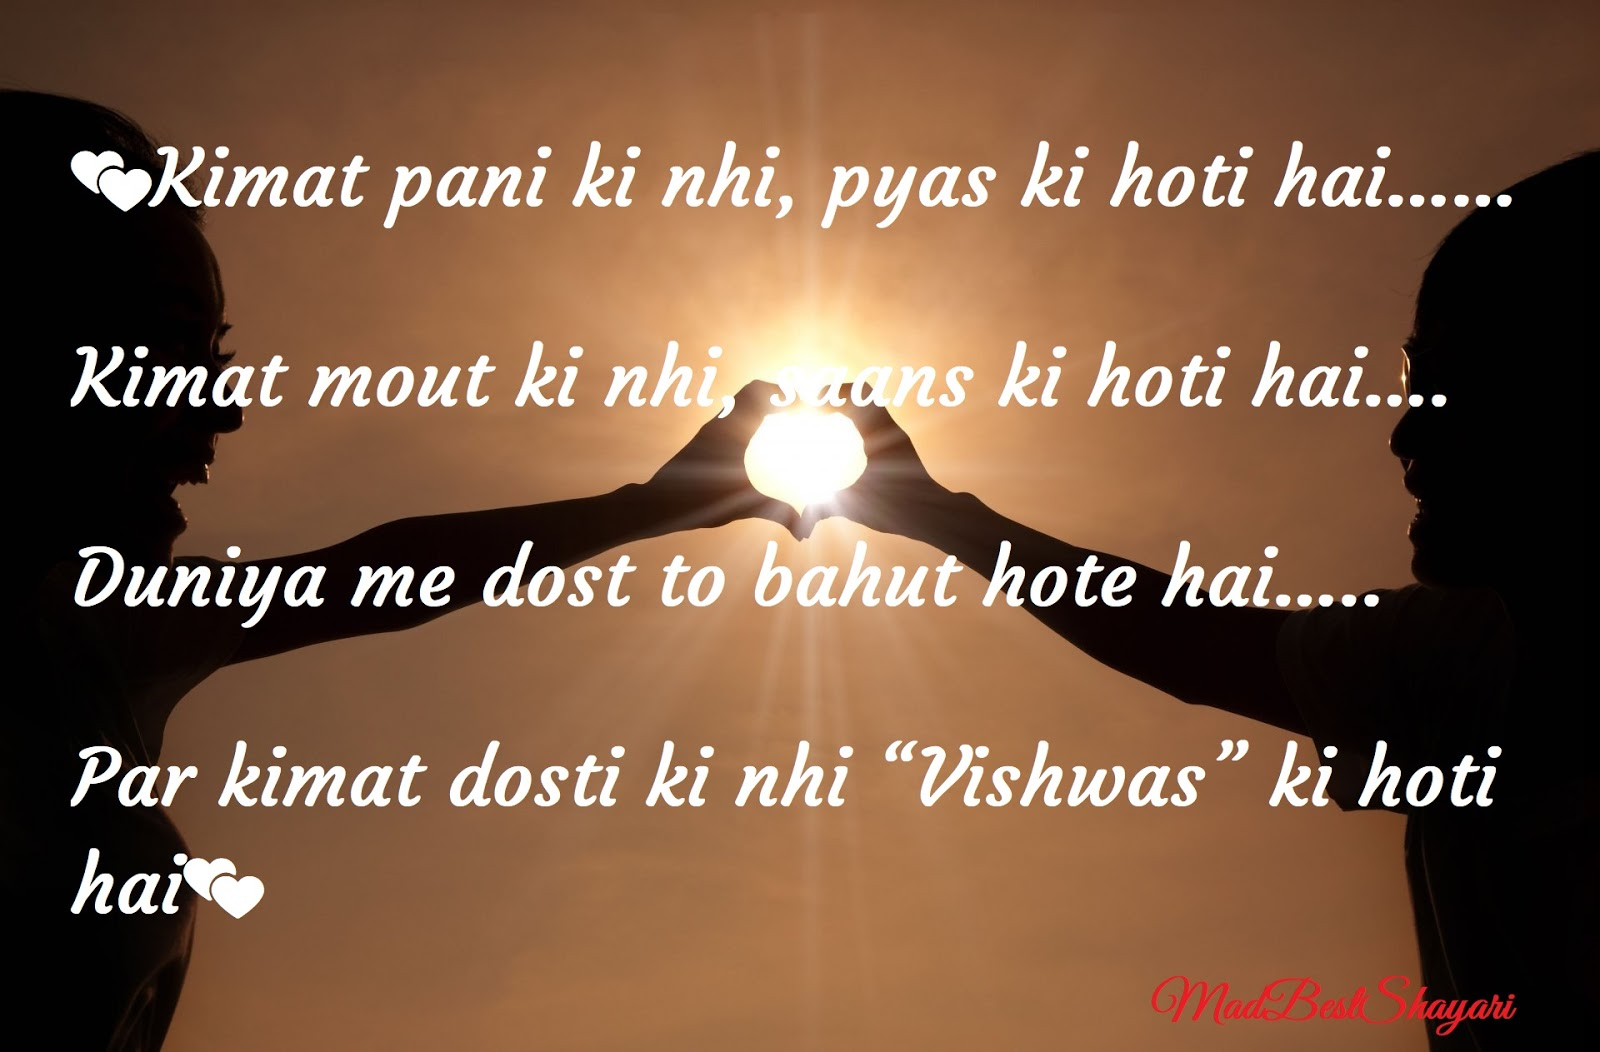 Best Quotes About Friendship Mad Best Shayari  All Best Shayari